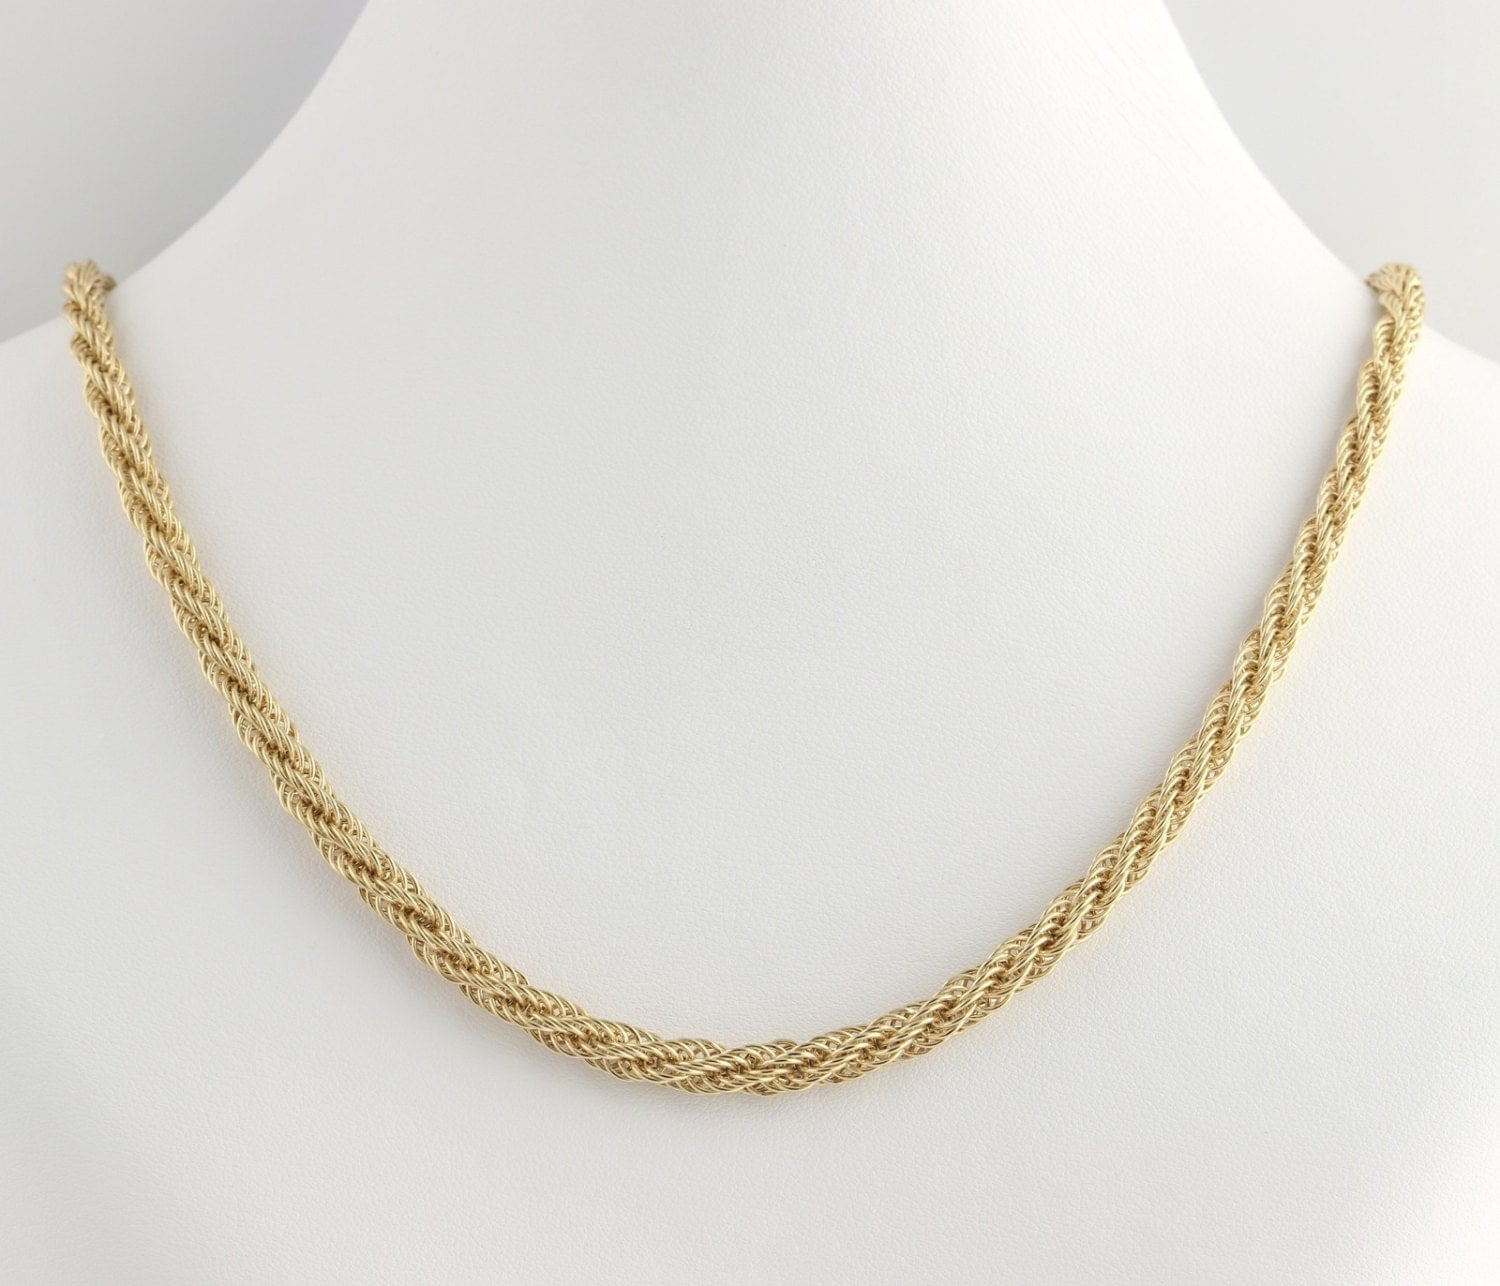 twisted rope chain necklace 18 14k yellow gold estate